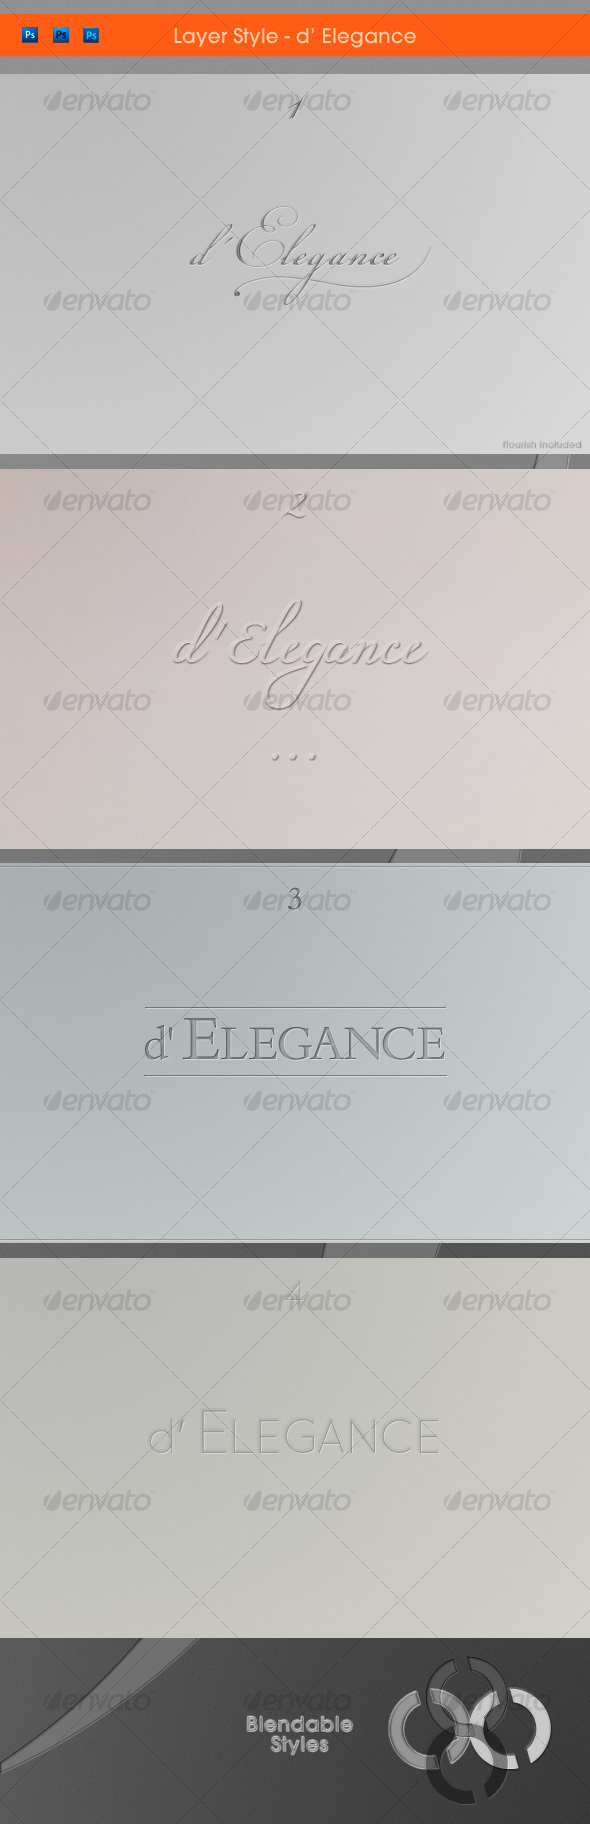 Typographica d' Elegance - Text Effects Styles